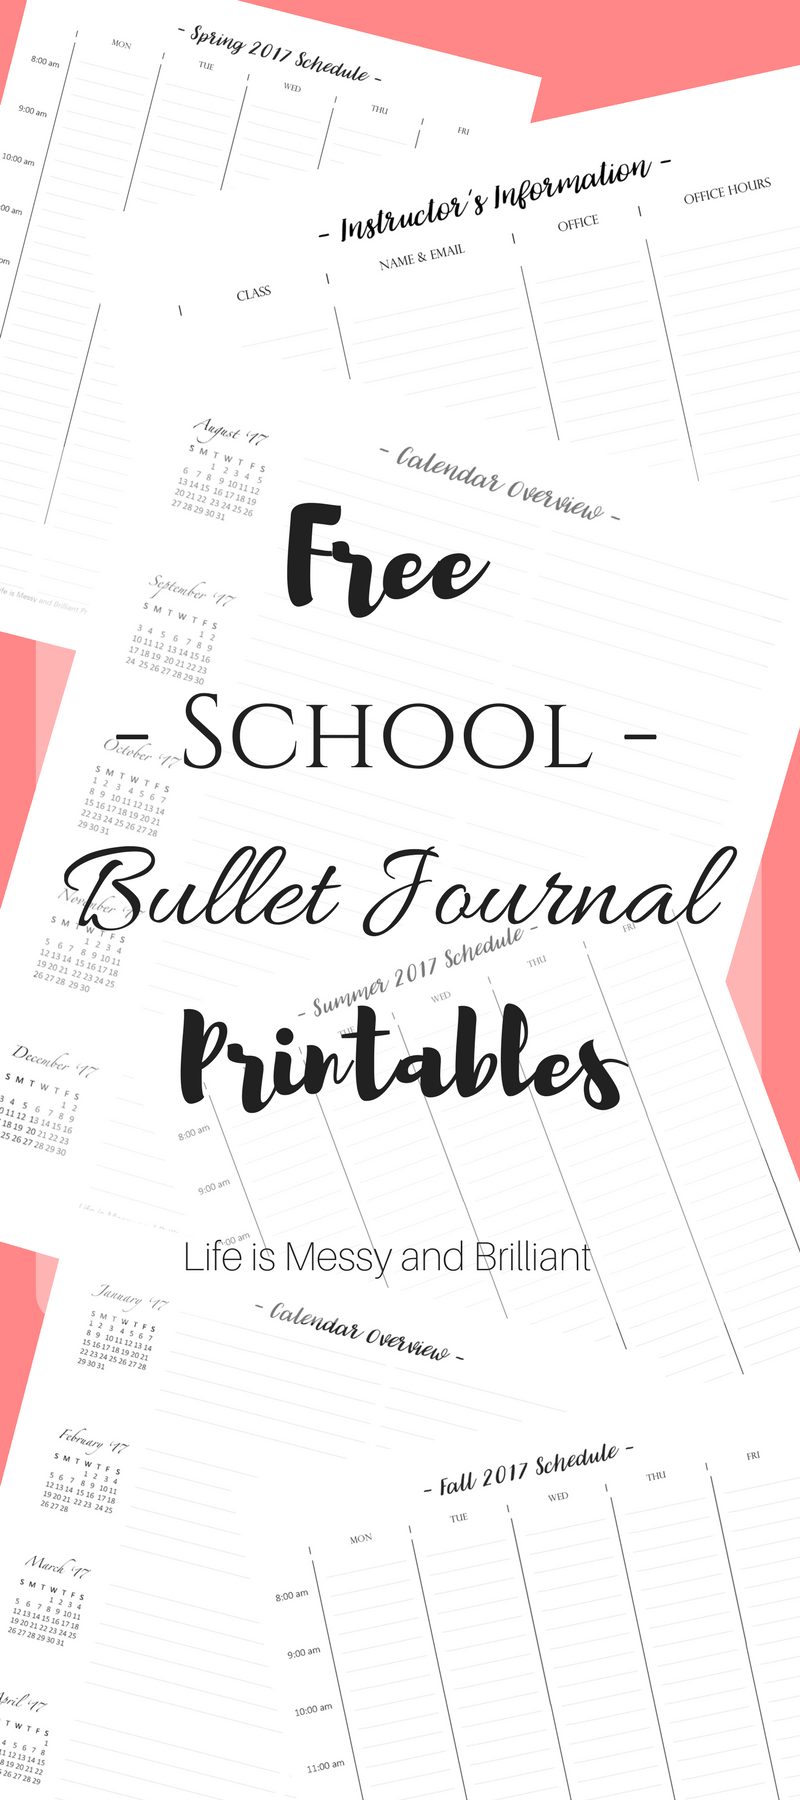 photo about Free Journal Printables titled Absolutely free Higher education Bullet Magazine Printables Planner Programs